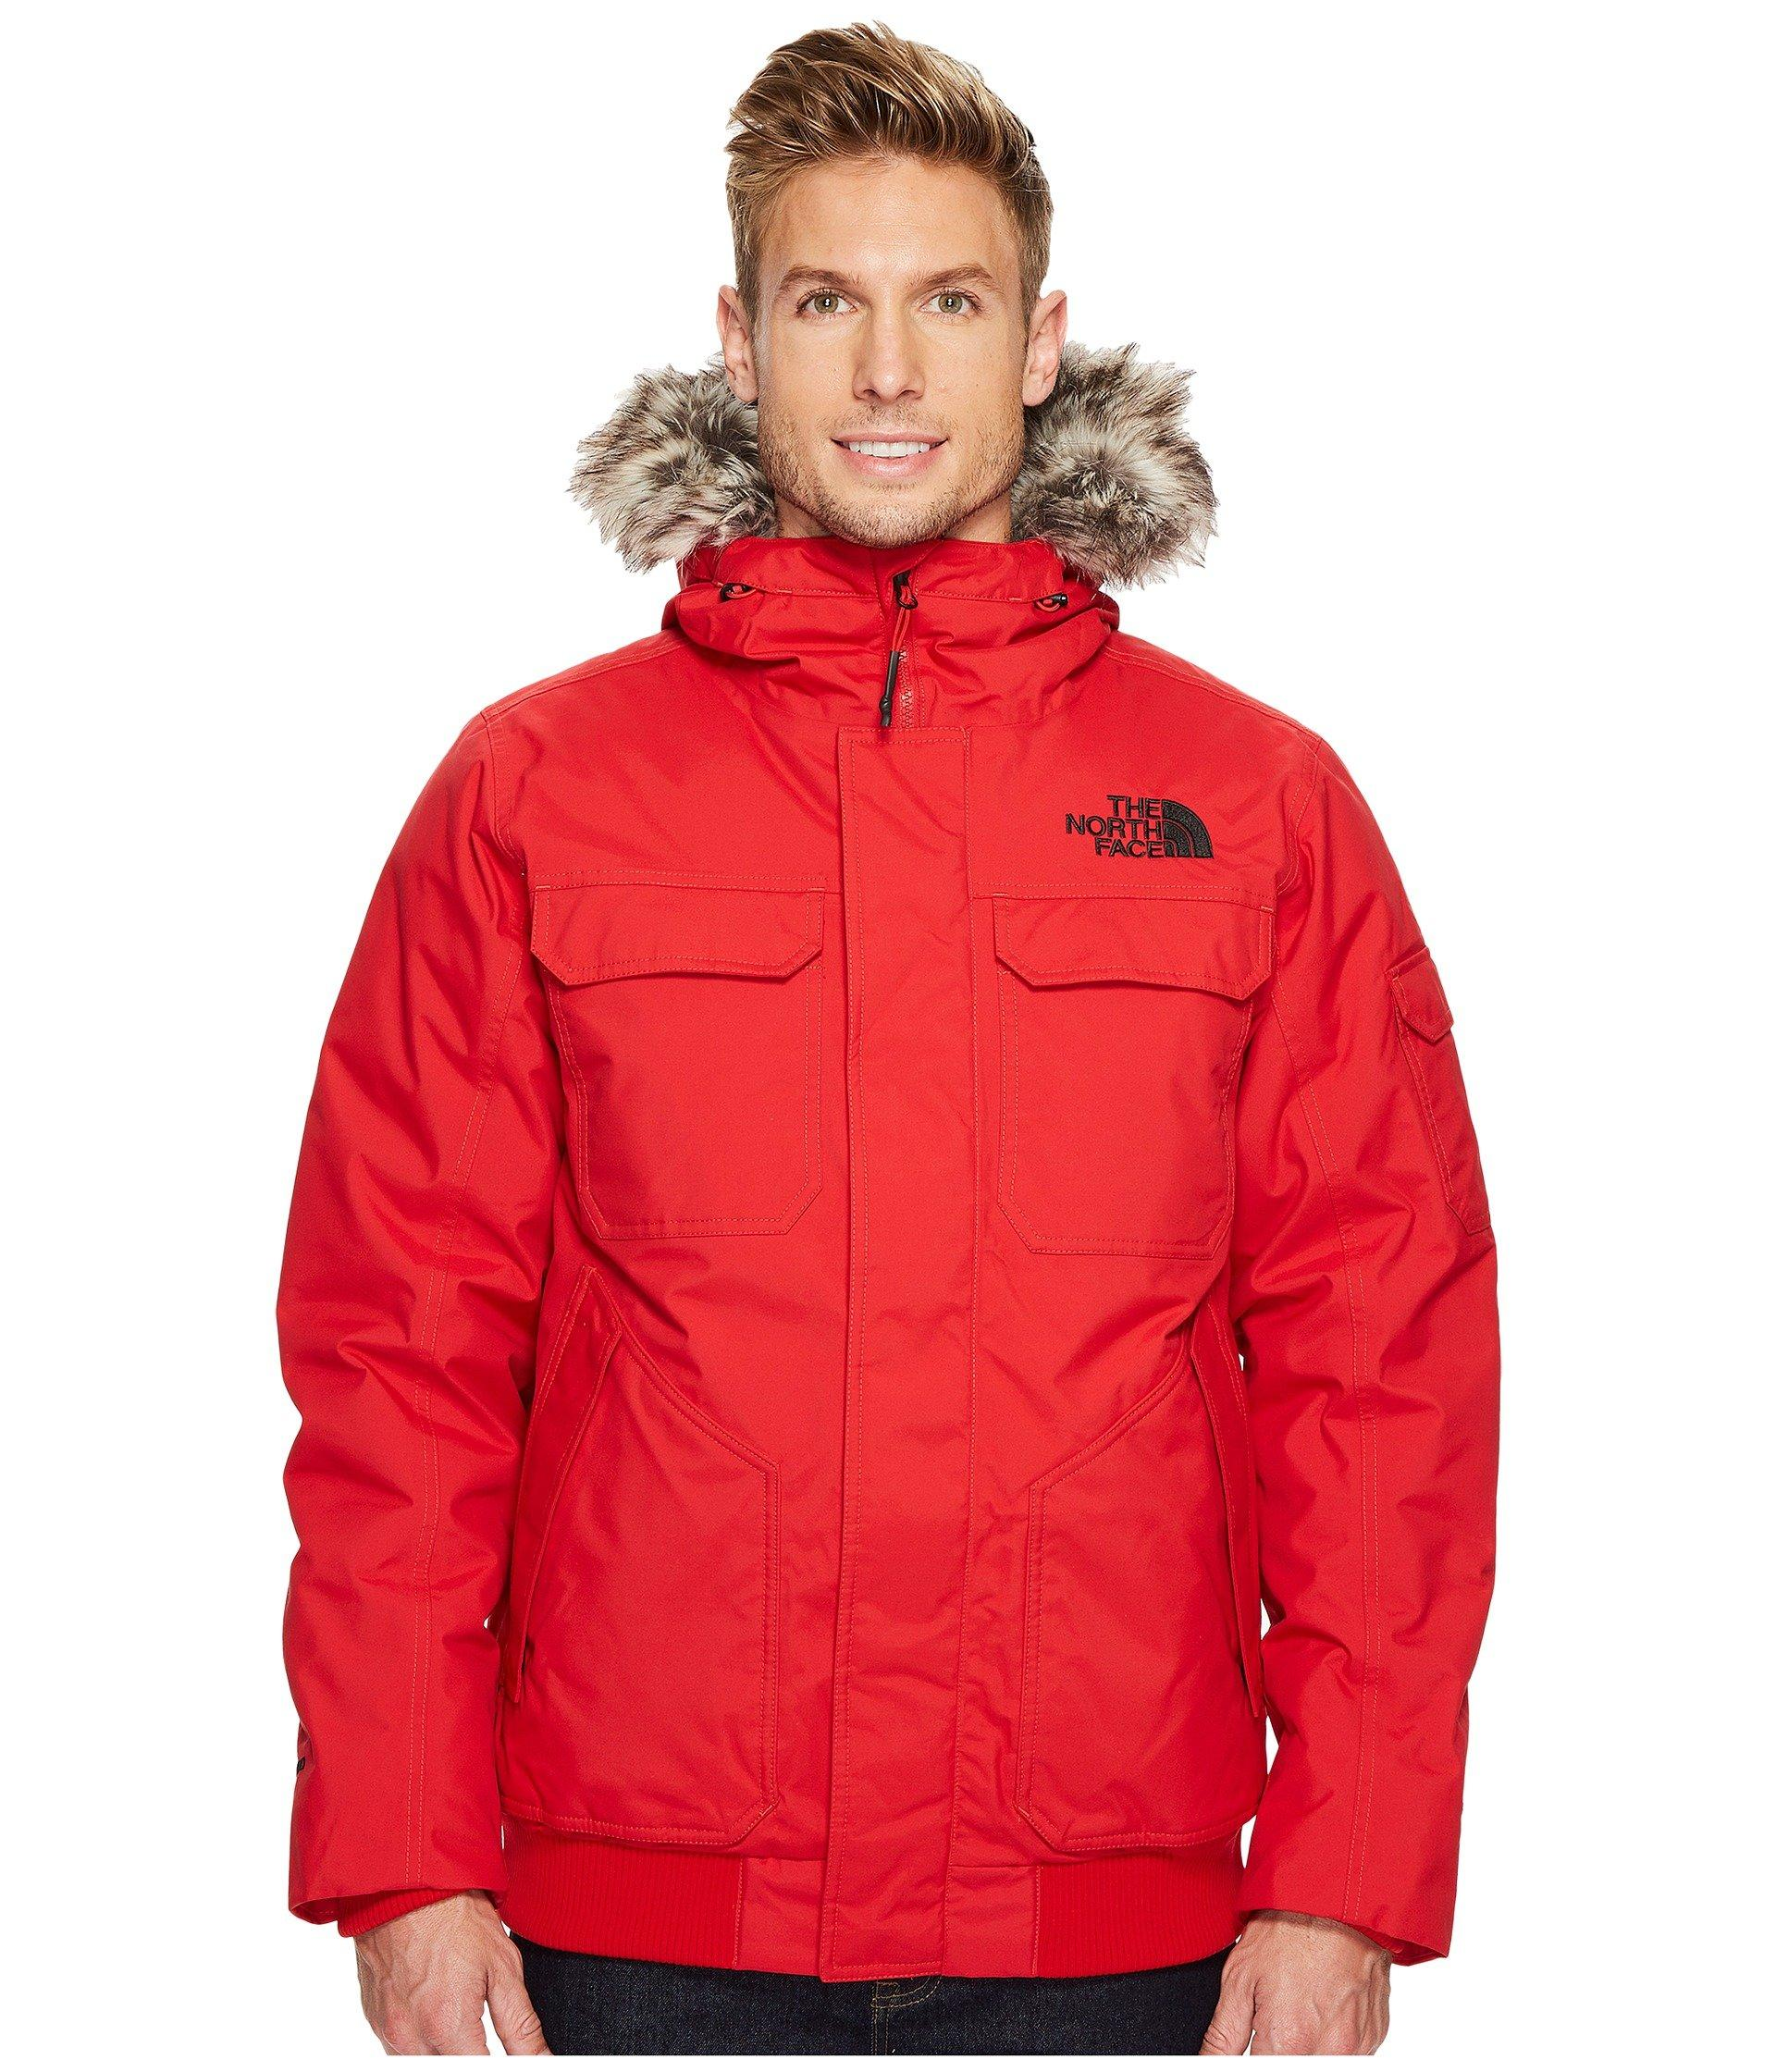 62a7a5477 The North Face Gotham Jacket Iii (tnf Red (prior Season)) Coat for men